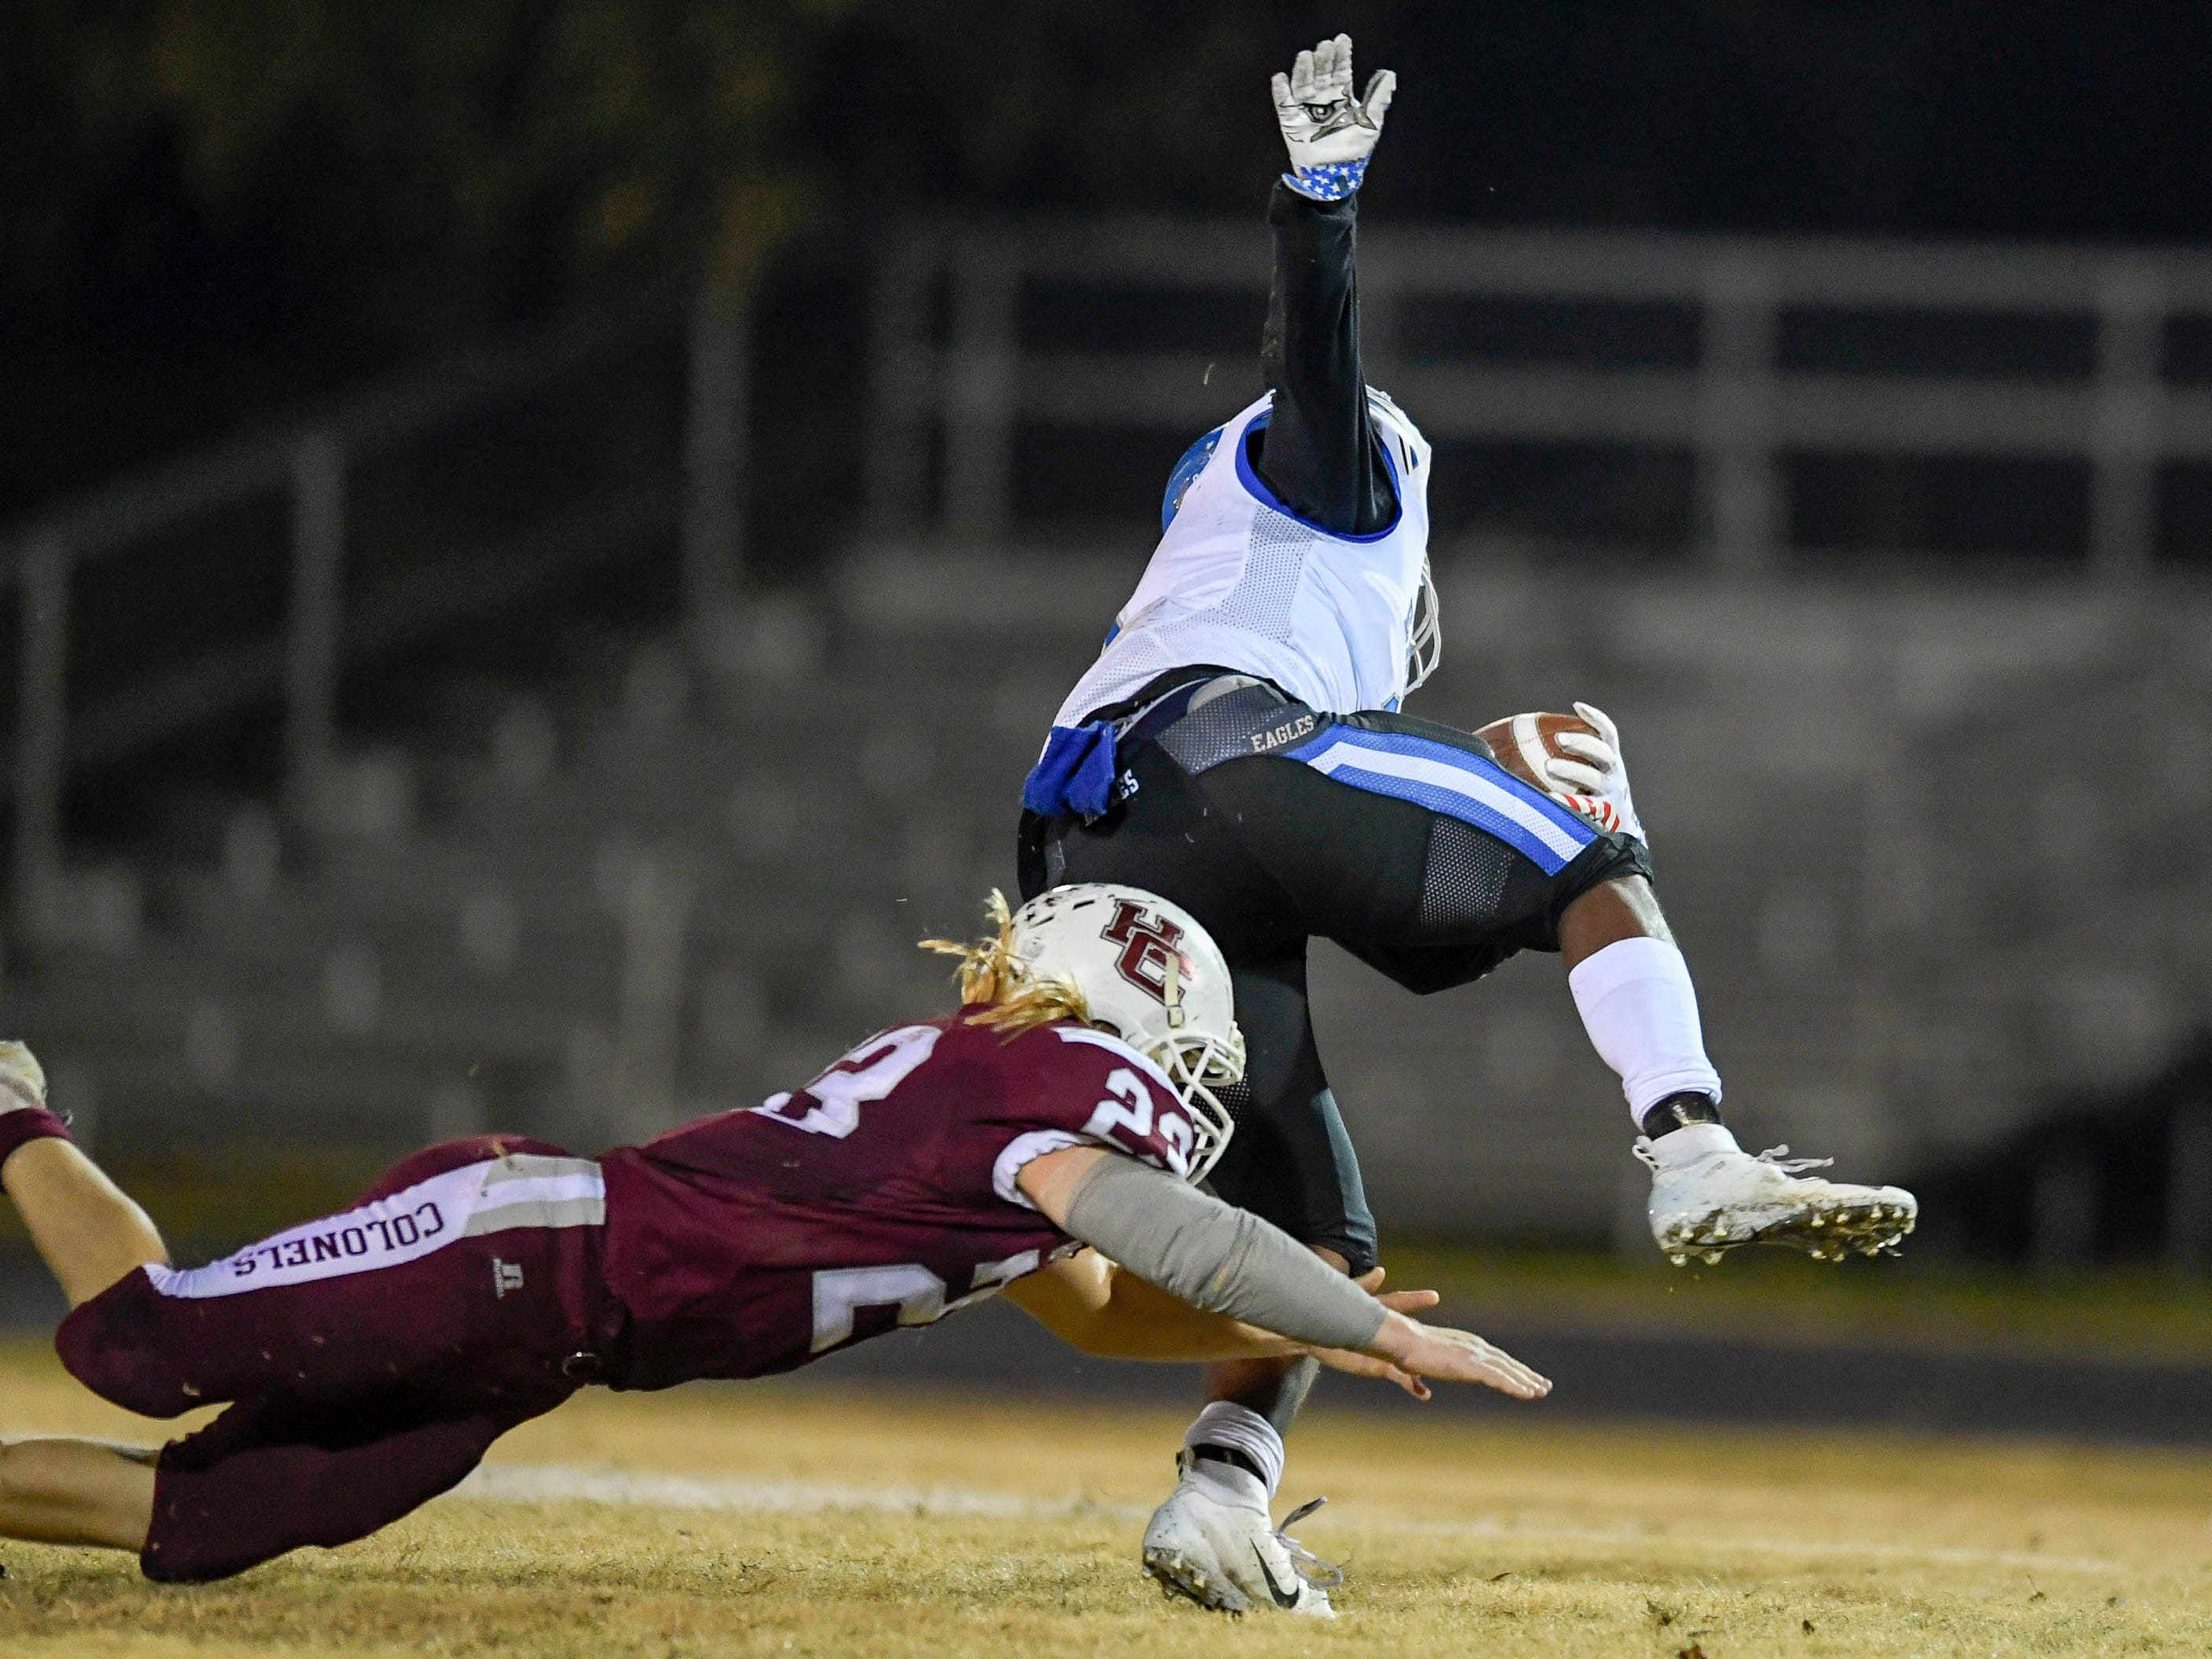 Henderson's Meric Stinson (23) tackles Eastern's Elijah Irvine (3) as the Henderson County Colonels play the Louisville Eastern Eagles in the first round of the 6-A playoffs at Colonel Field Friday, November 2, 2018.